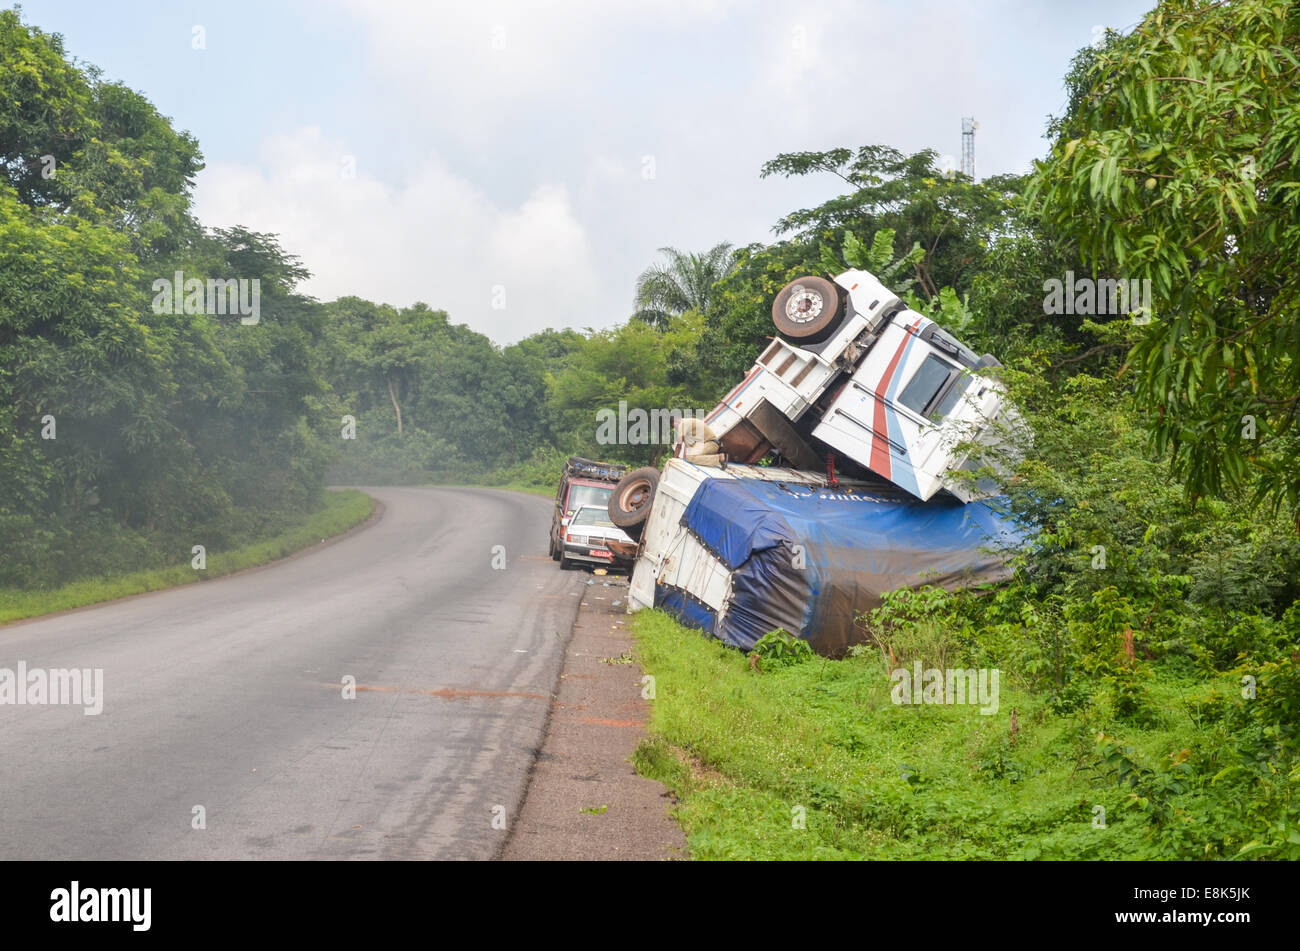 Accident on the roads of Guinea, Africa - Stock Image